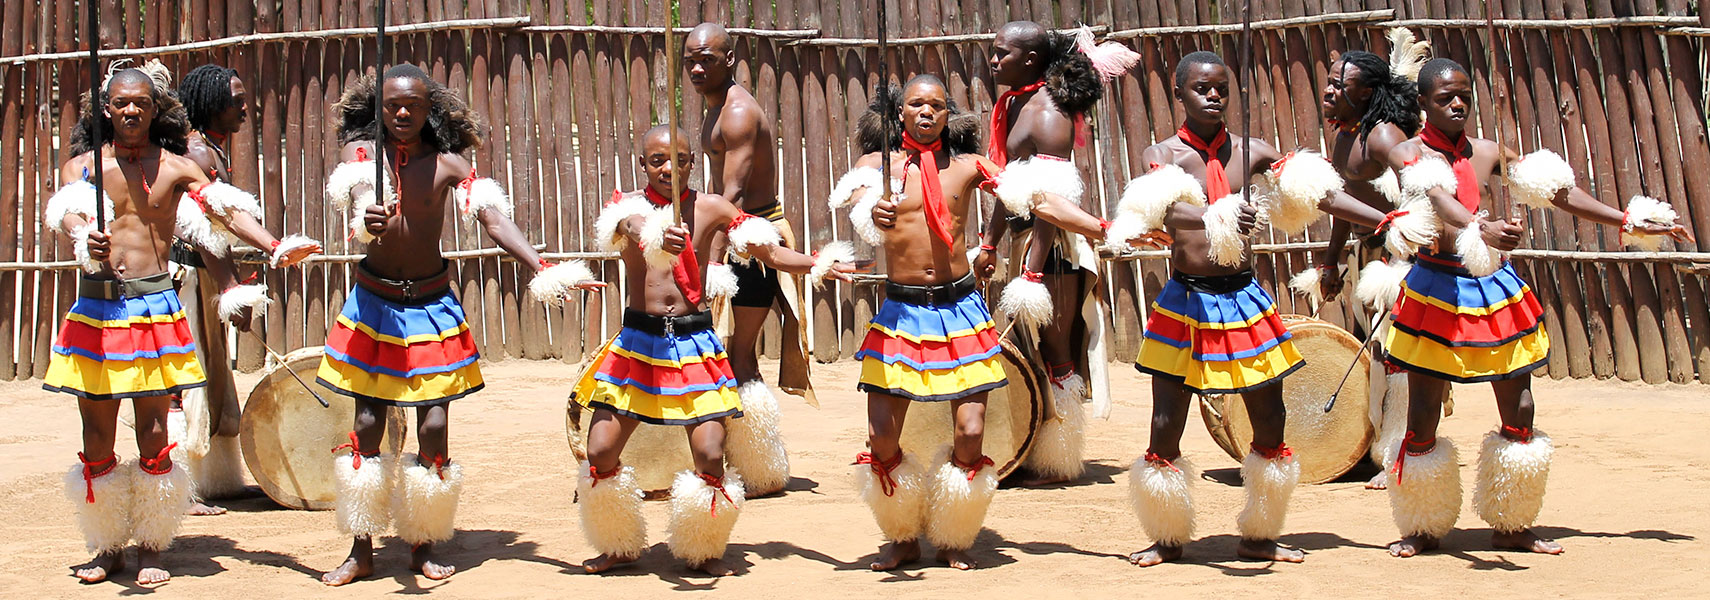 Sing and dance performance Manzini, Swaziland